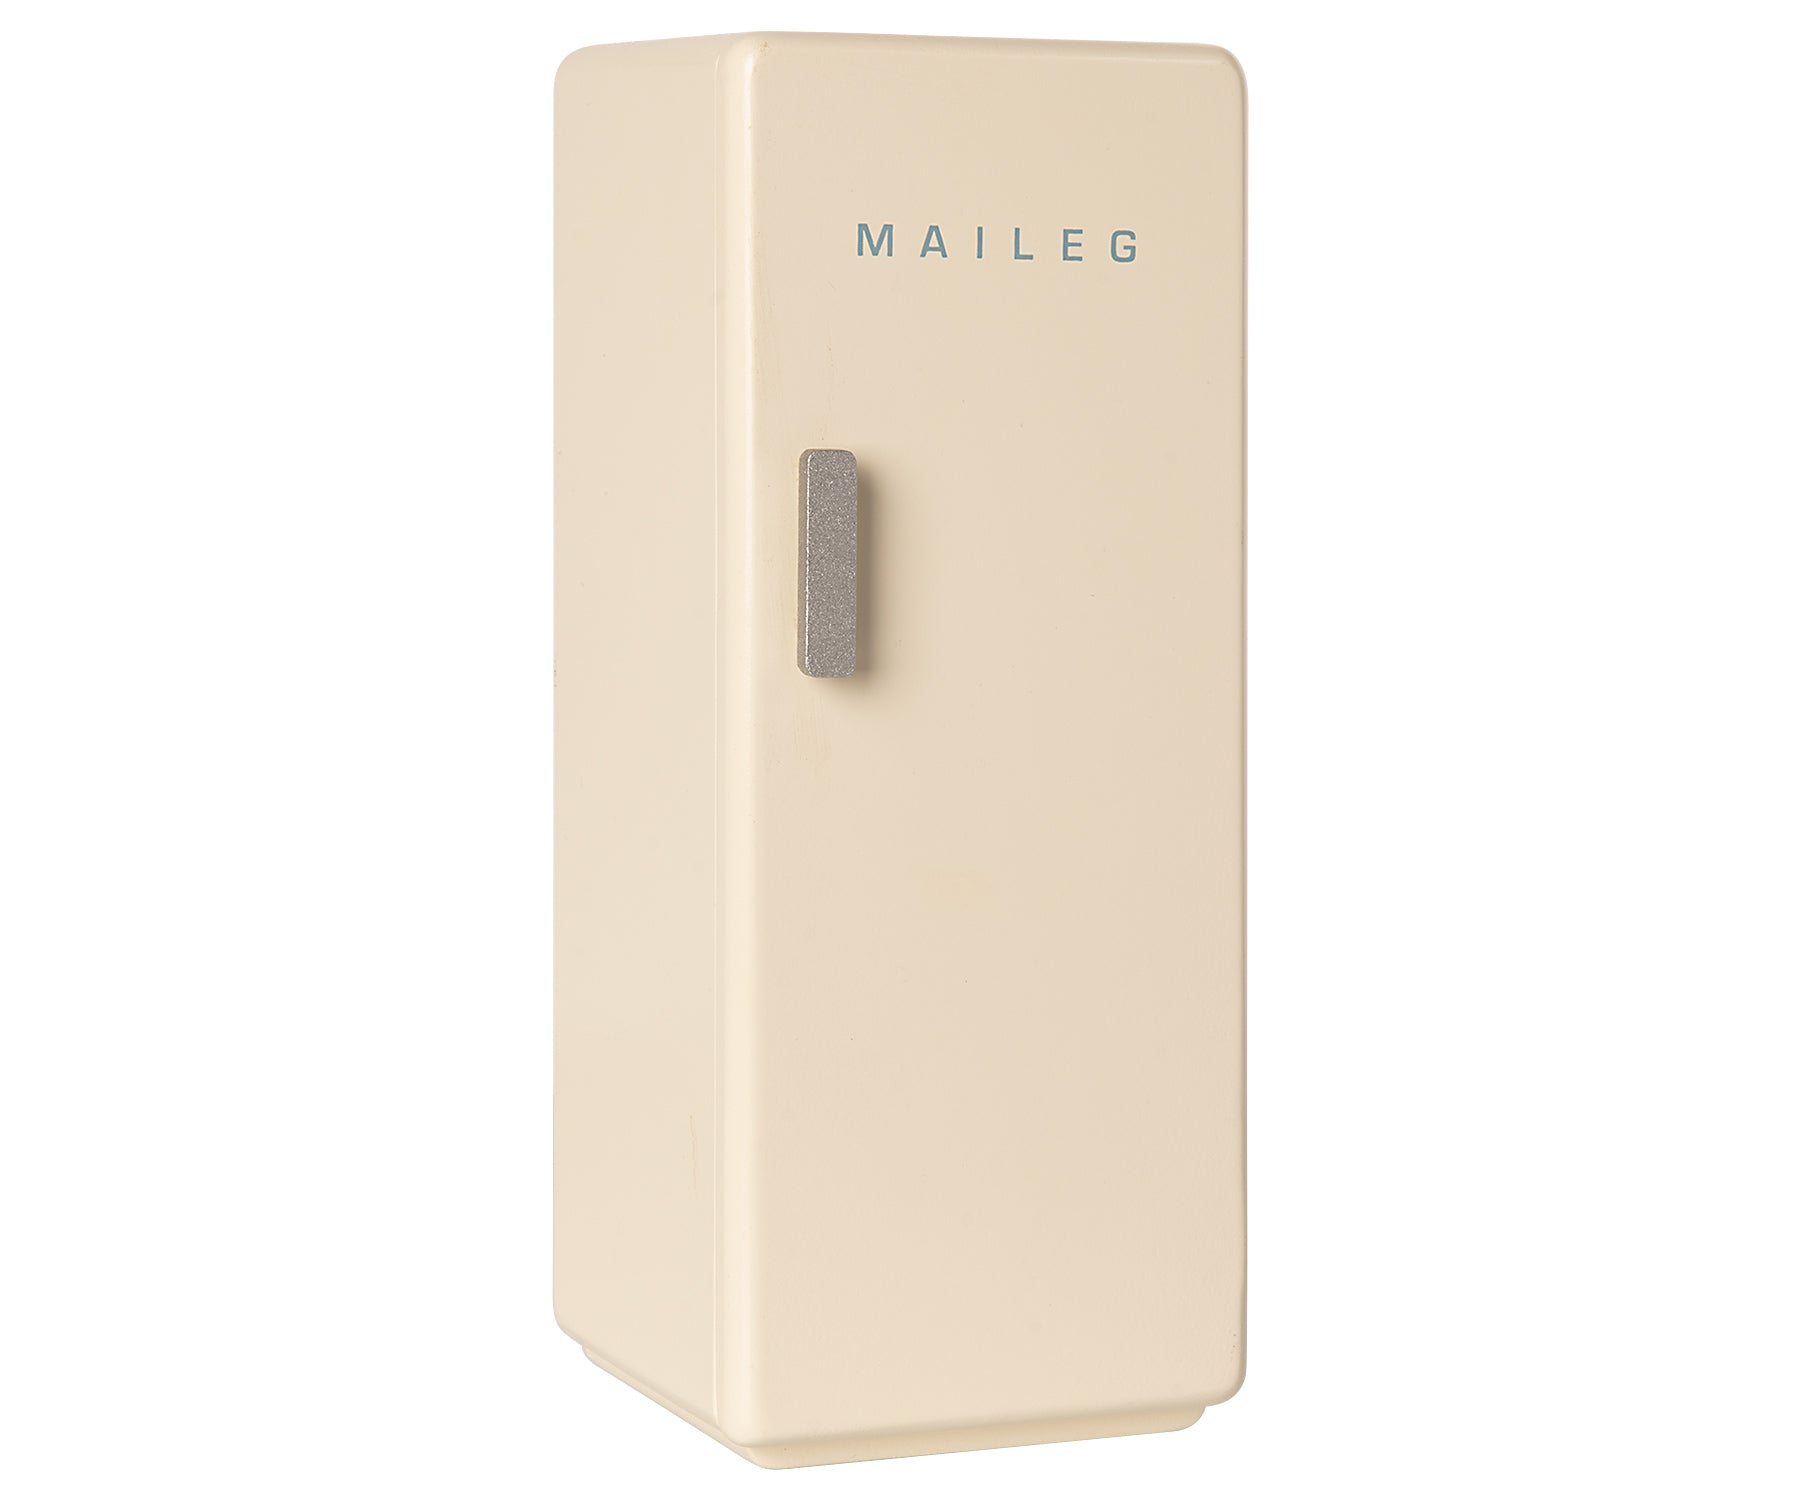 Maileg Miniature Cooler